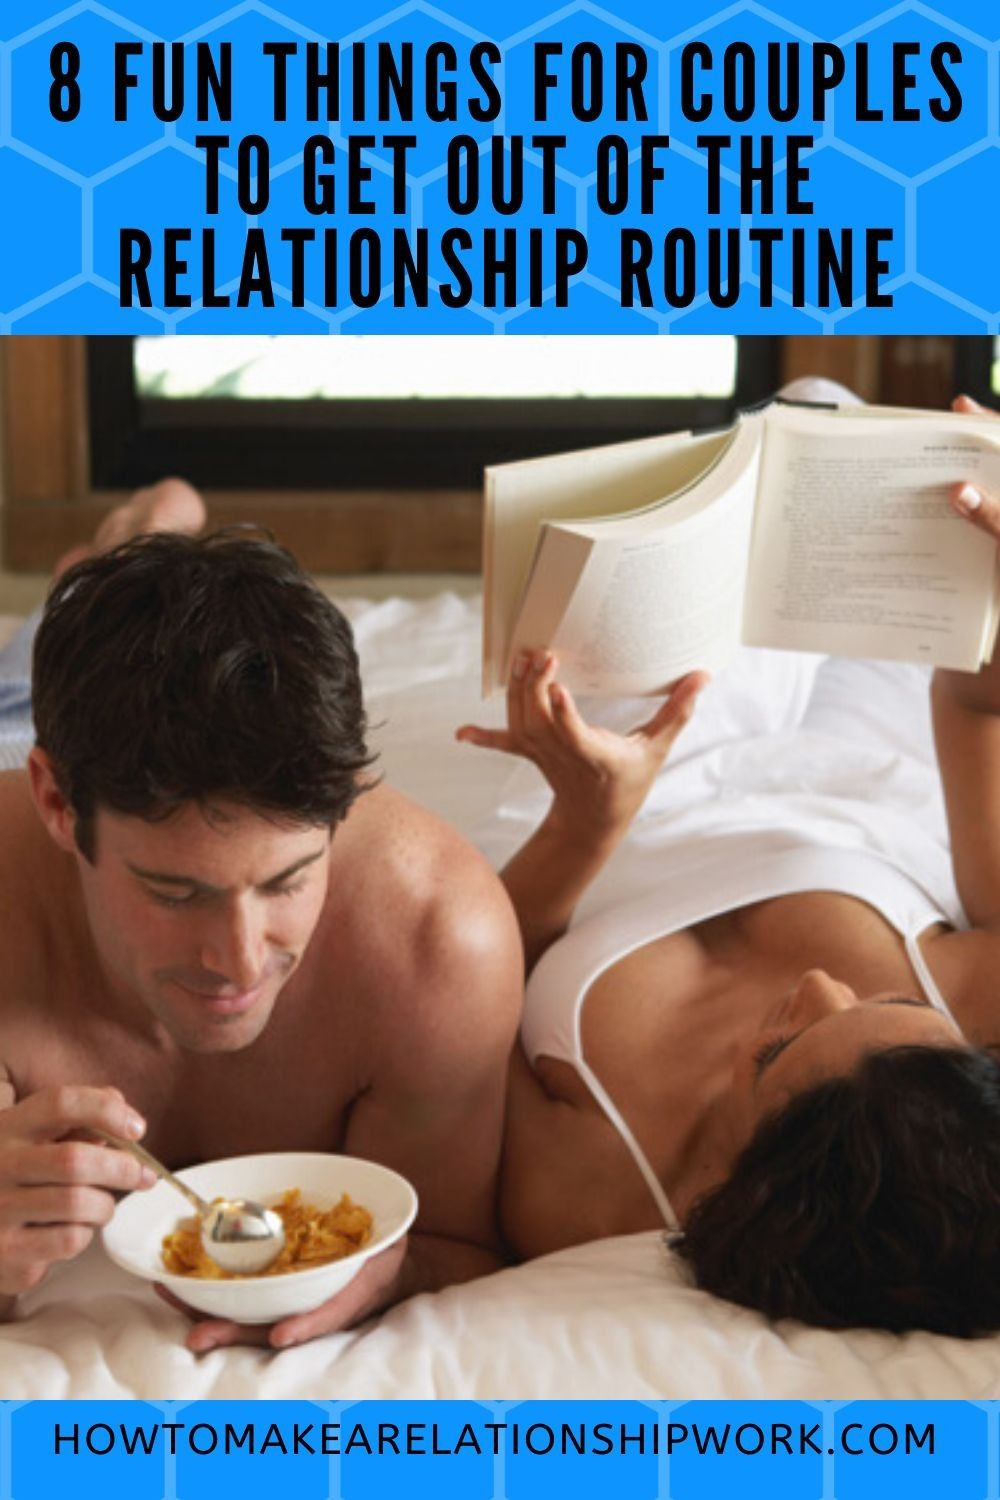 8 FUN THINGS FOR COUPLES TO GET OUT OF THE RELATIONSHIP ROUTINE